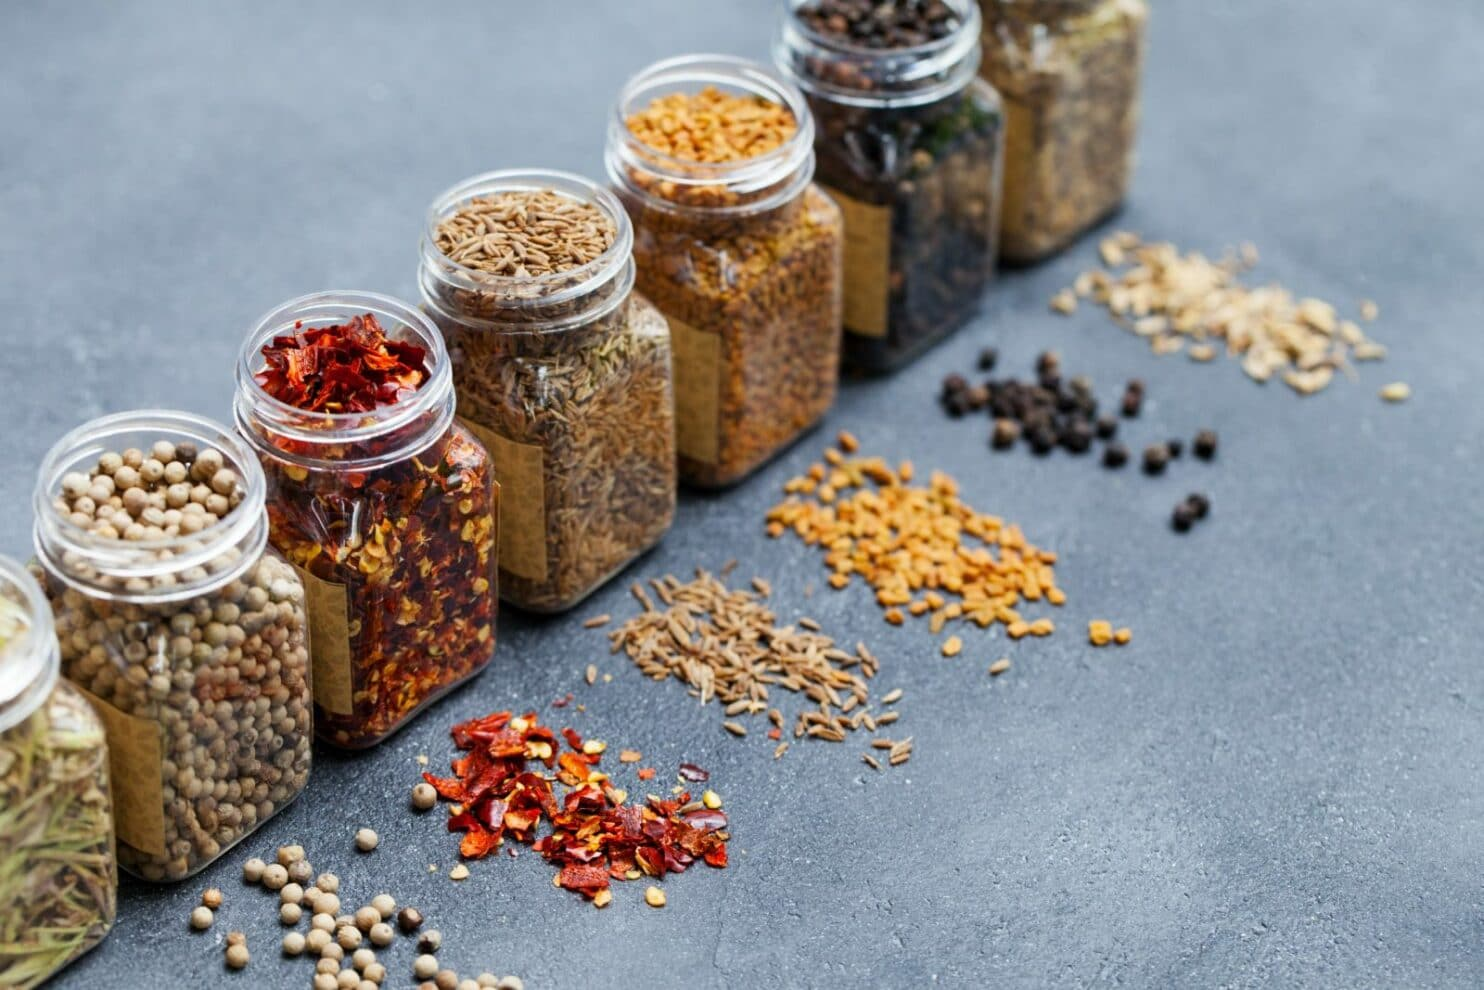 Assortments of spices, white pepper, chili flakes, lemongrass, coriander and cumin seeds in jars on grey stone background. Copy space